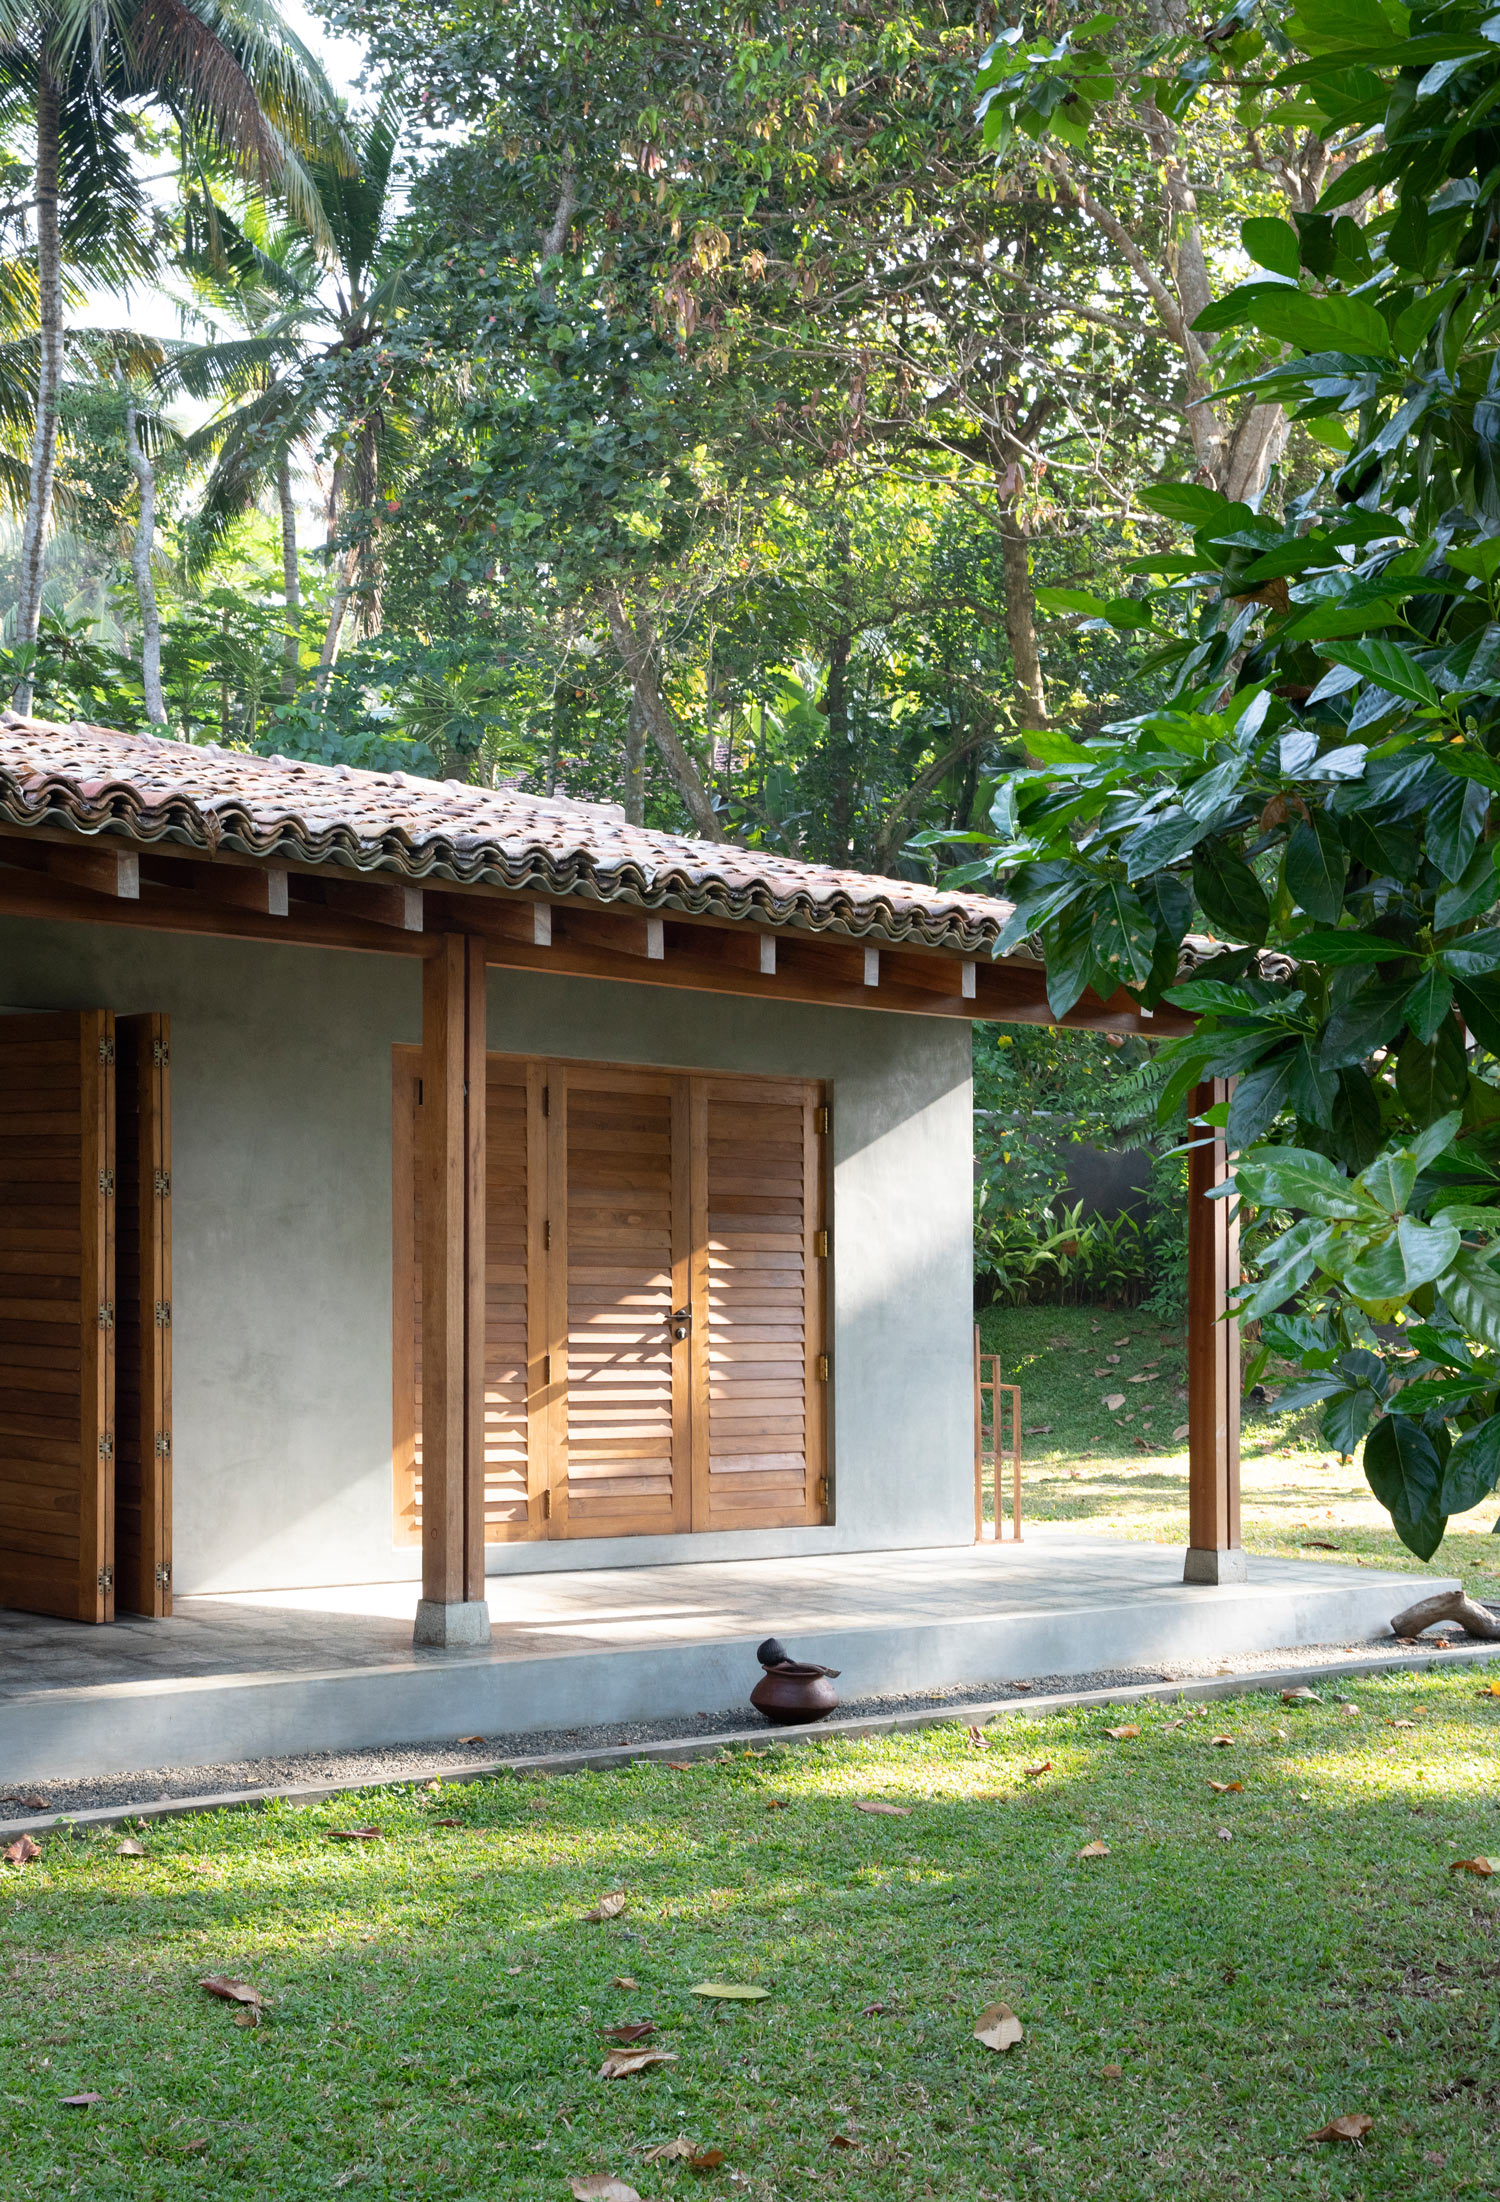 Enjoy Raw Luxury Design And Slow Holidays In This Airbnb In Sri Lanka - Concrete, teak wood, terrazzo materials - www.AUTHENTICINTERIOR.COM design studio & blog